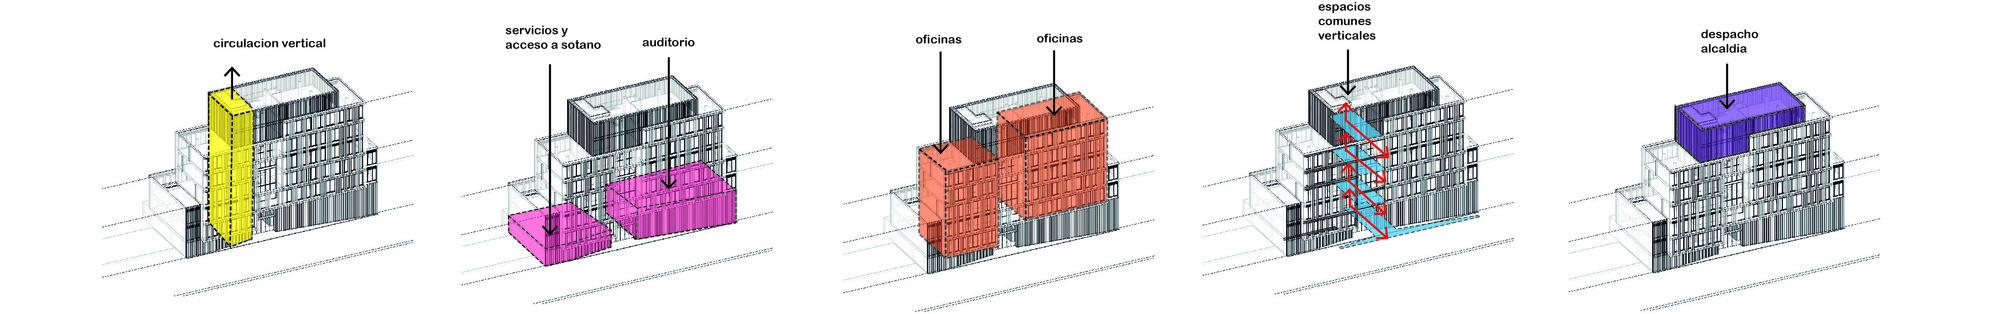 Courtesy of Espacio Colectivo Arquitectos S.A.S.